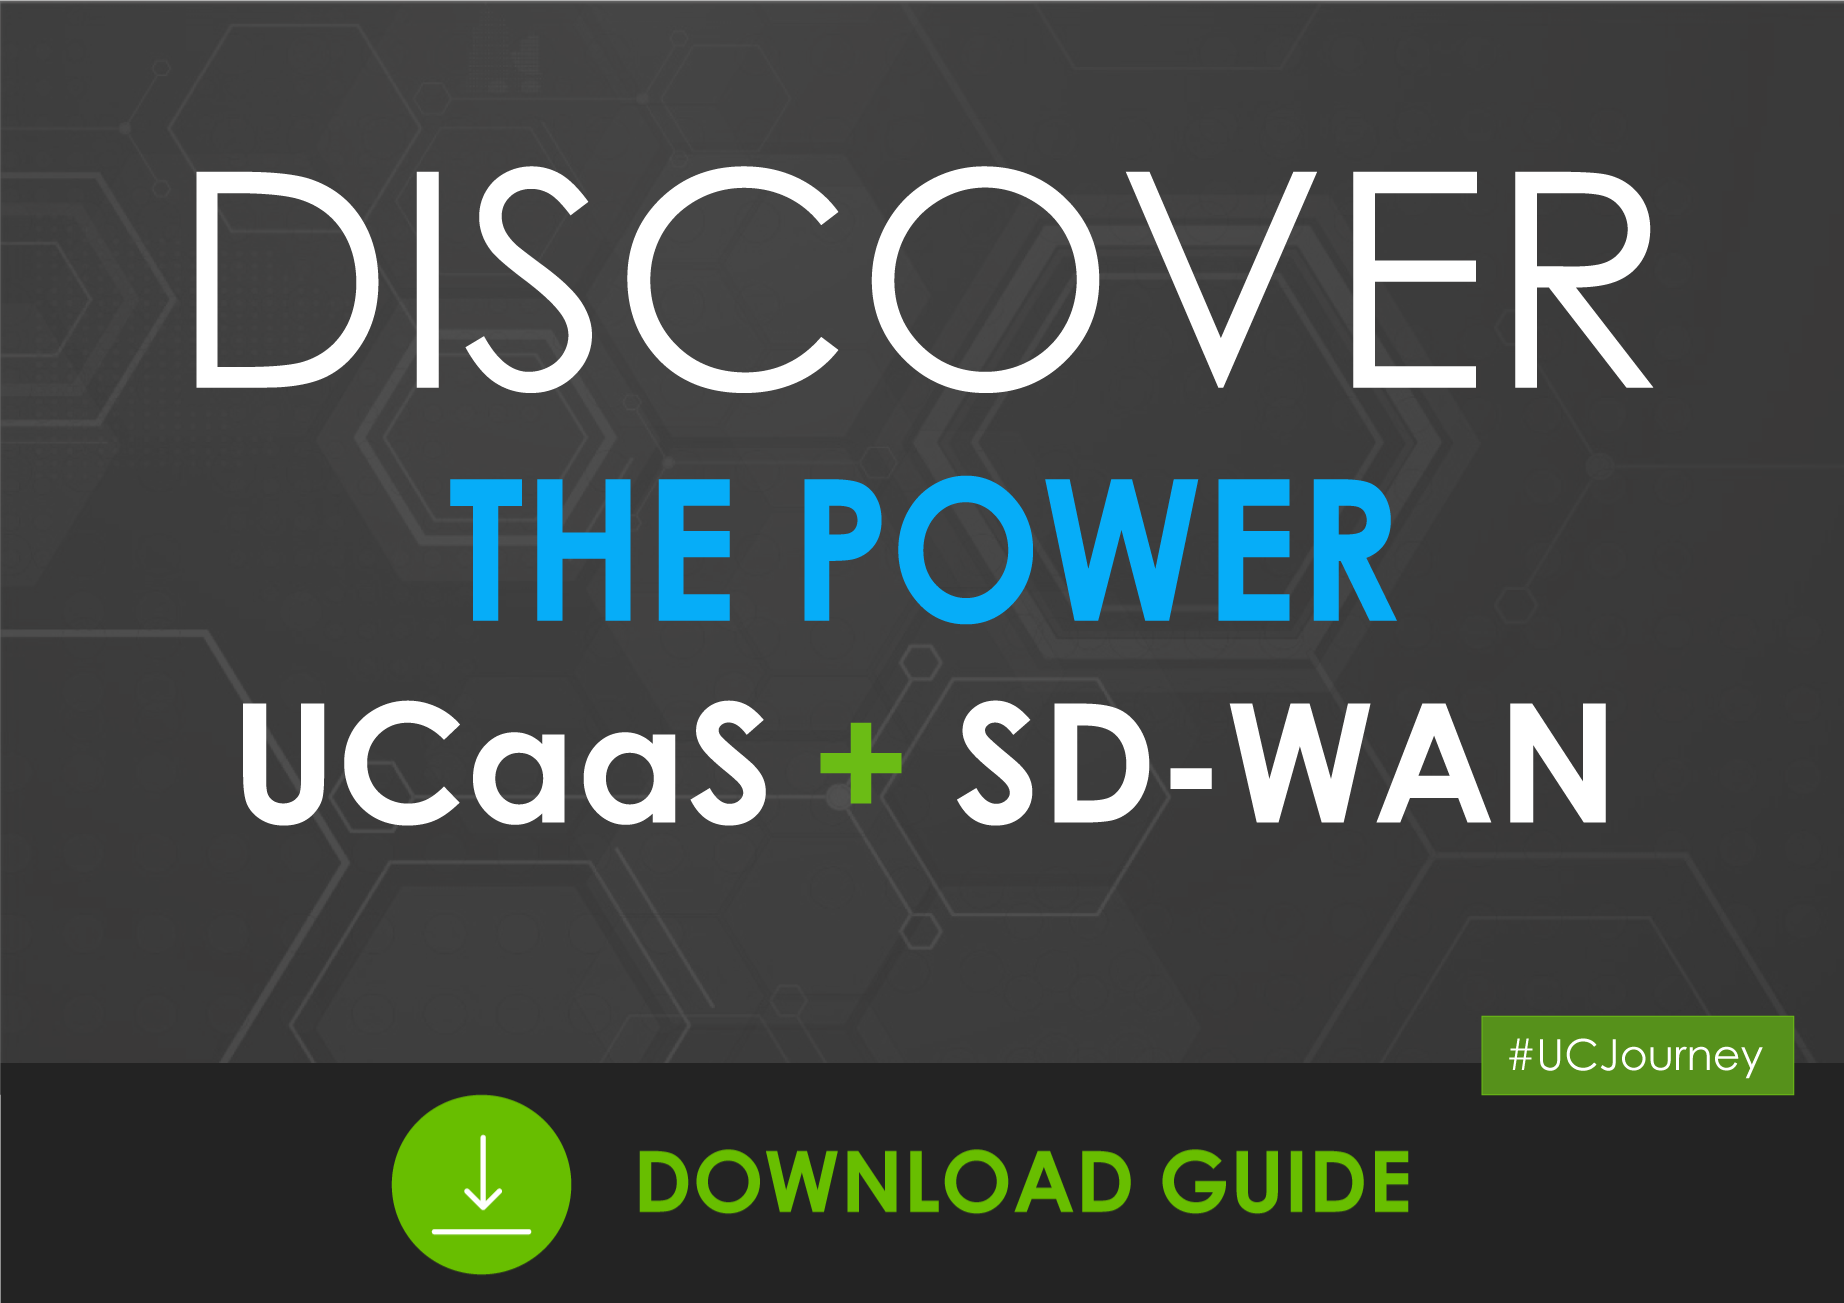 Discover the Power of UCaaS + SD WAN